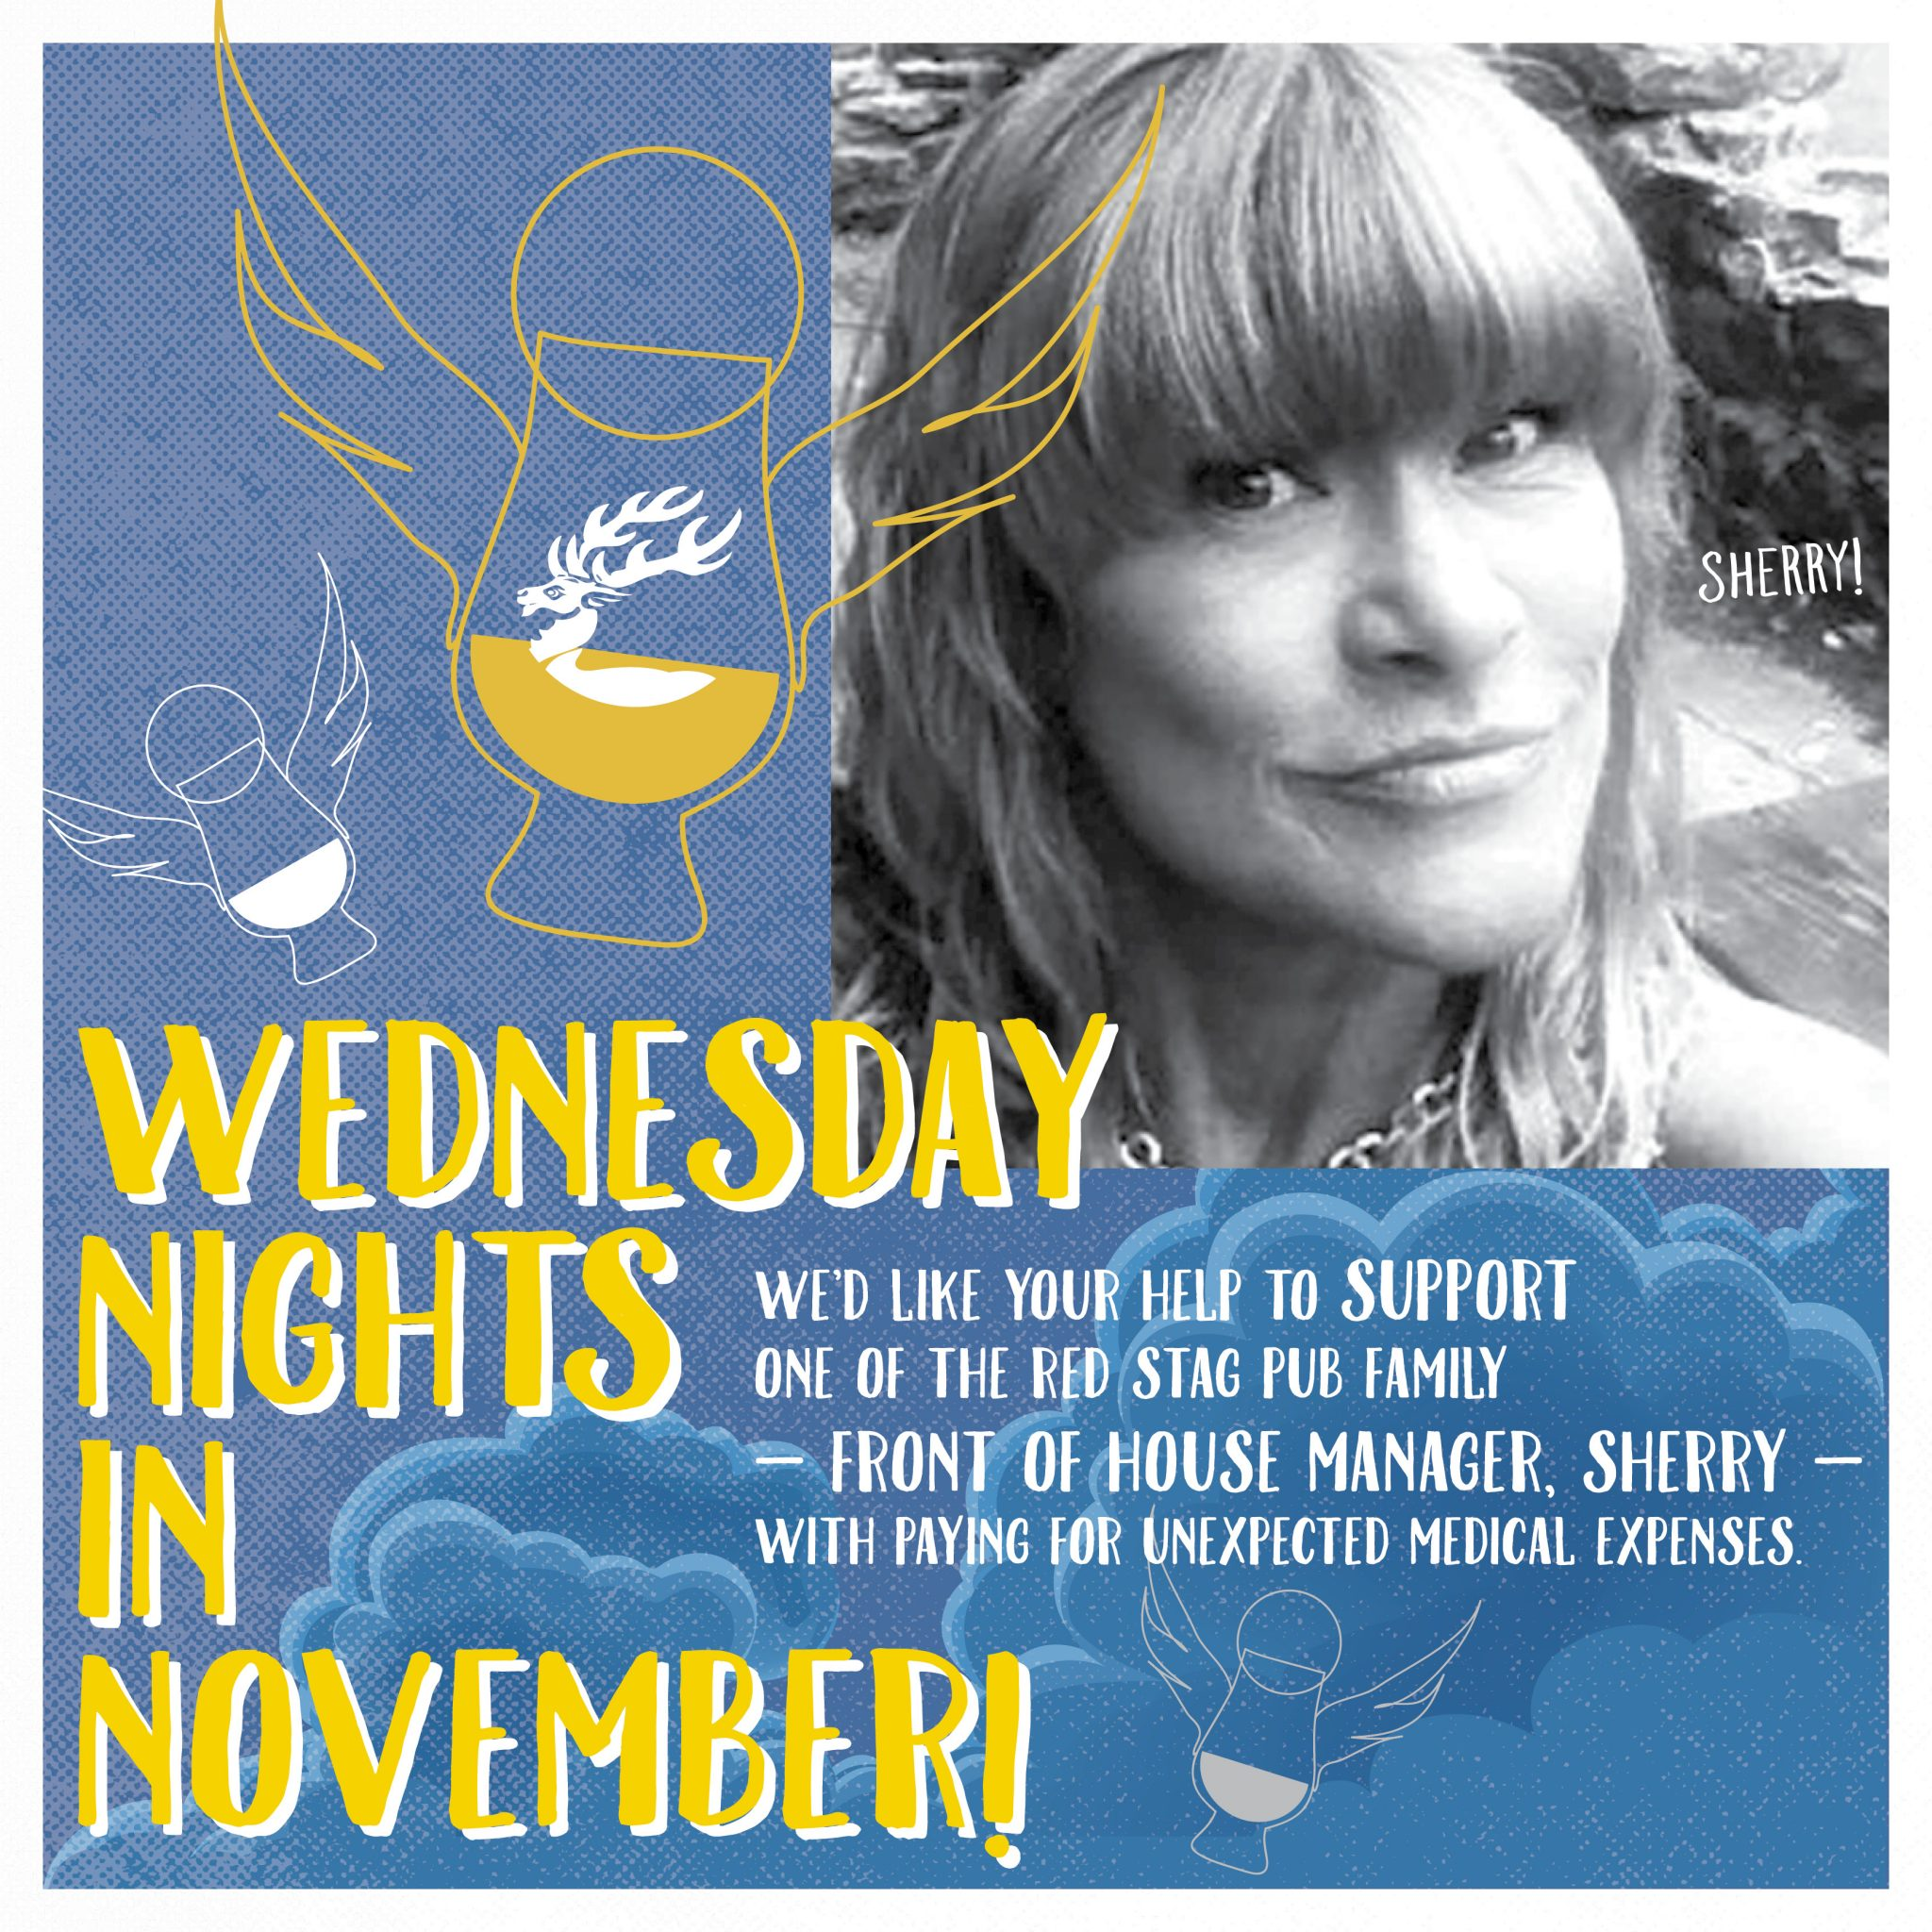 Angels' Share Nights for Sherry! Wednesday nights in November join McCarthy's in supporting our Front of House Manager Sherry in paying for unexpected medical expenses